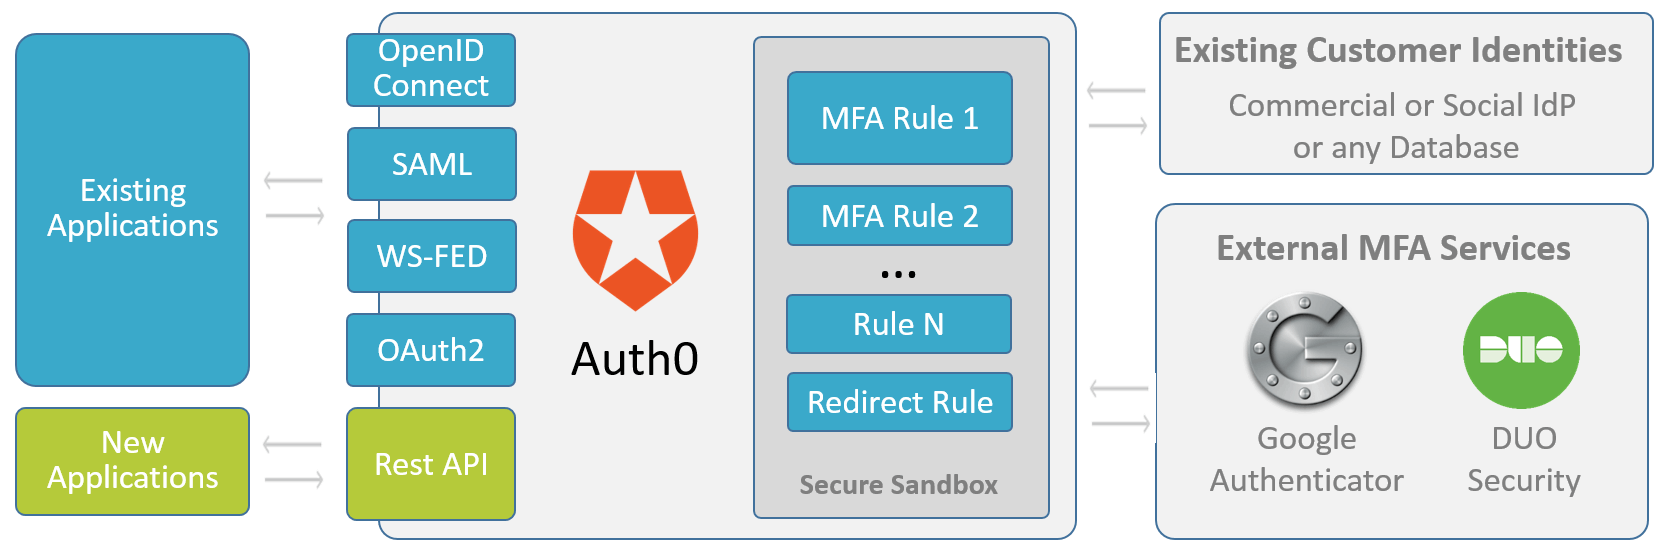 After authenticating the user, Auth0 can run any number of custom rules